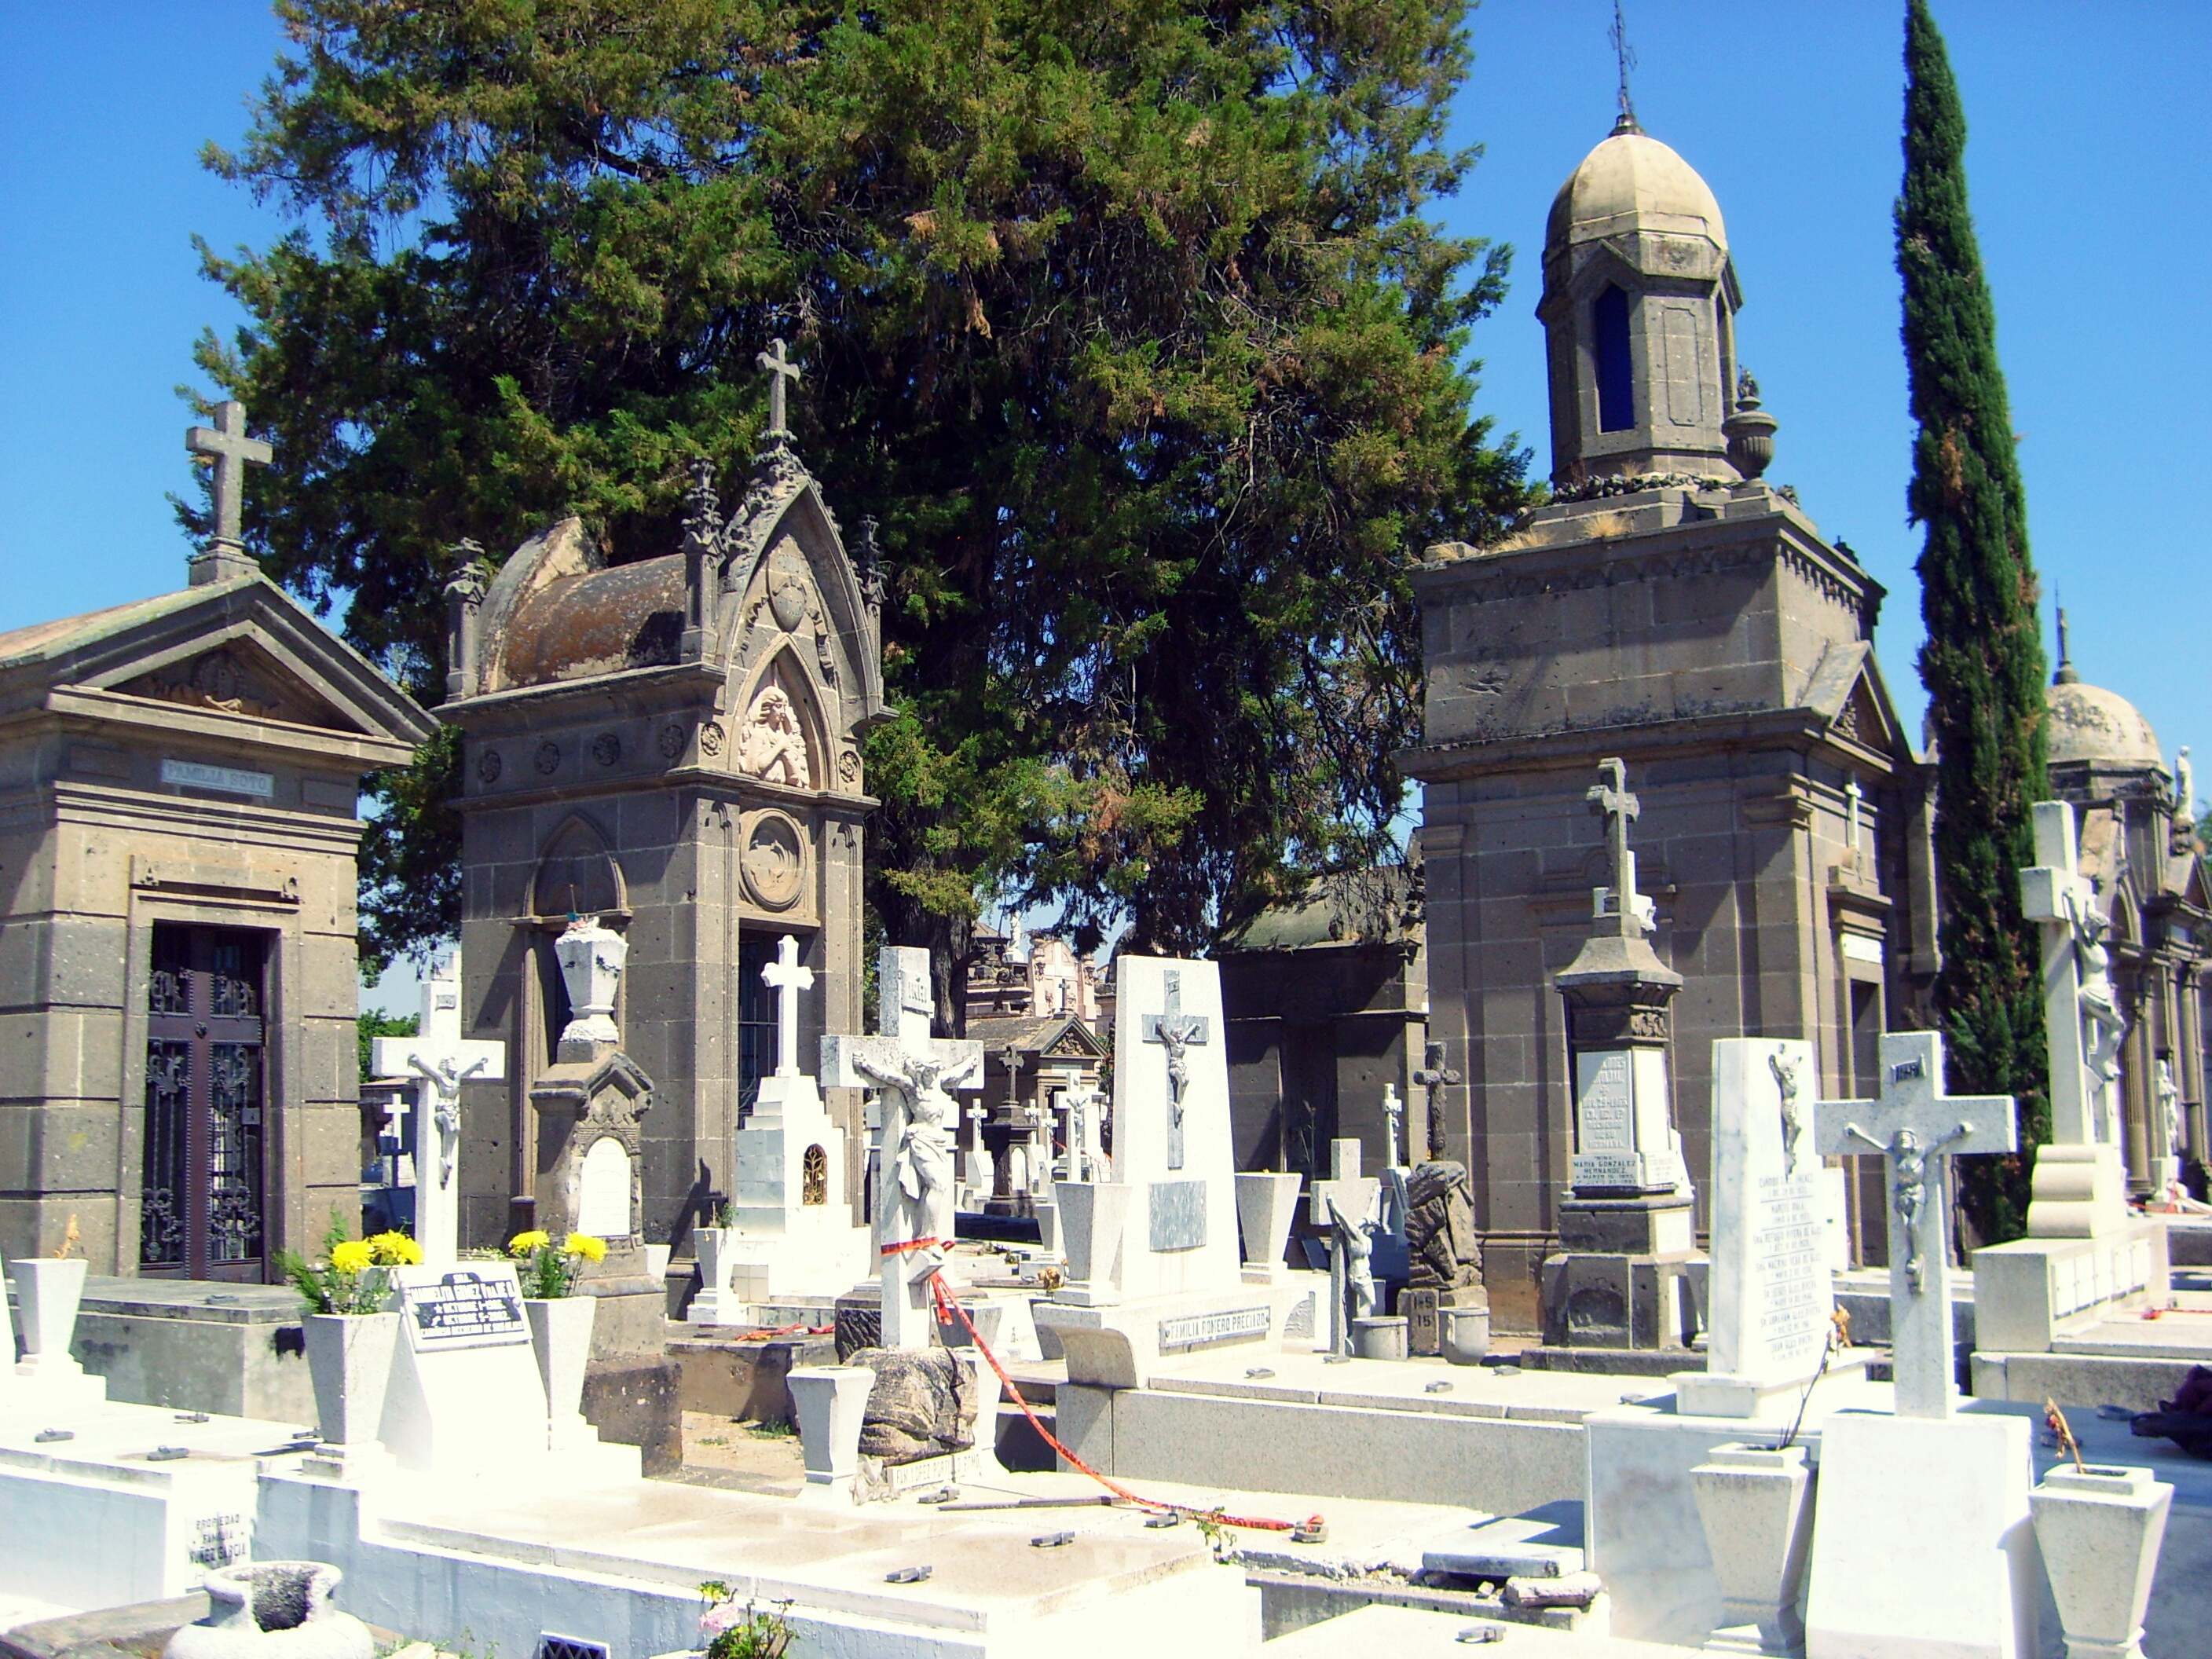 Gravestones at the historic Panteón de Mezquitán in Guadalajara, México.